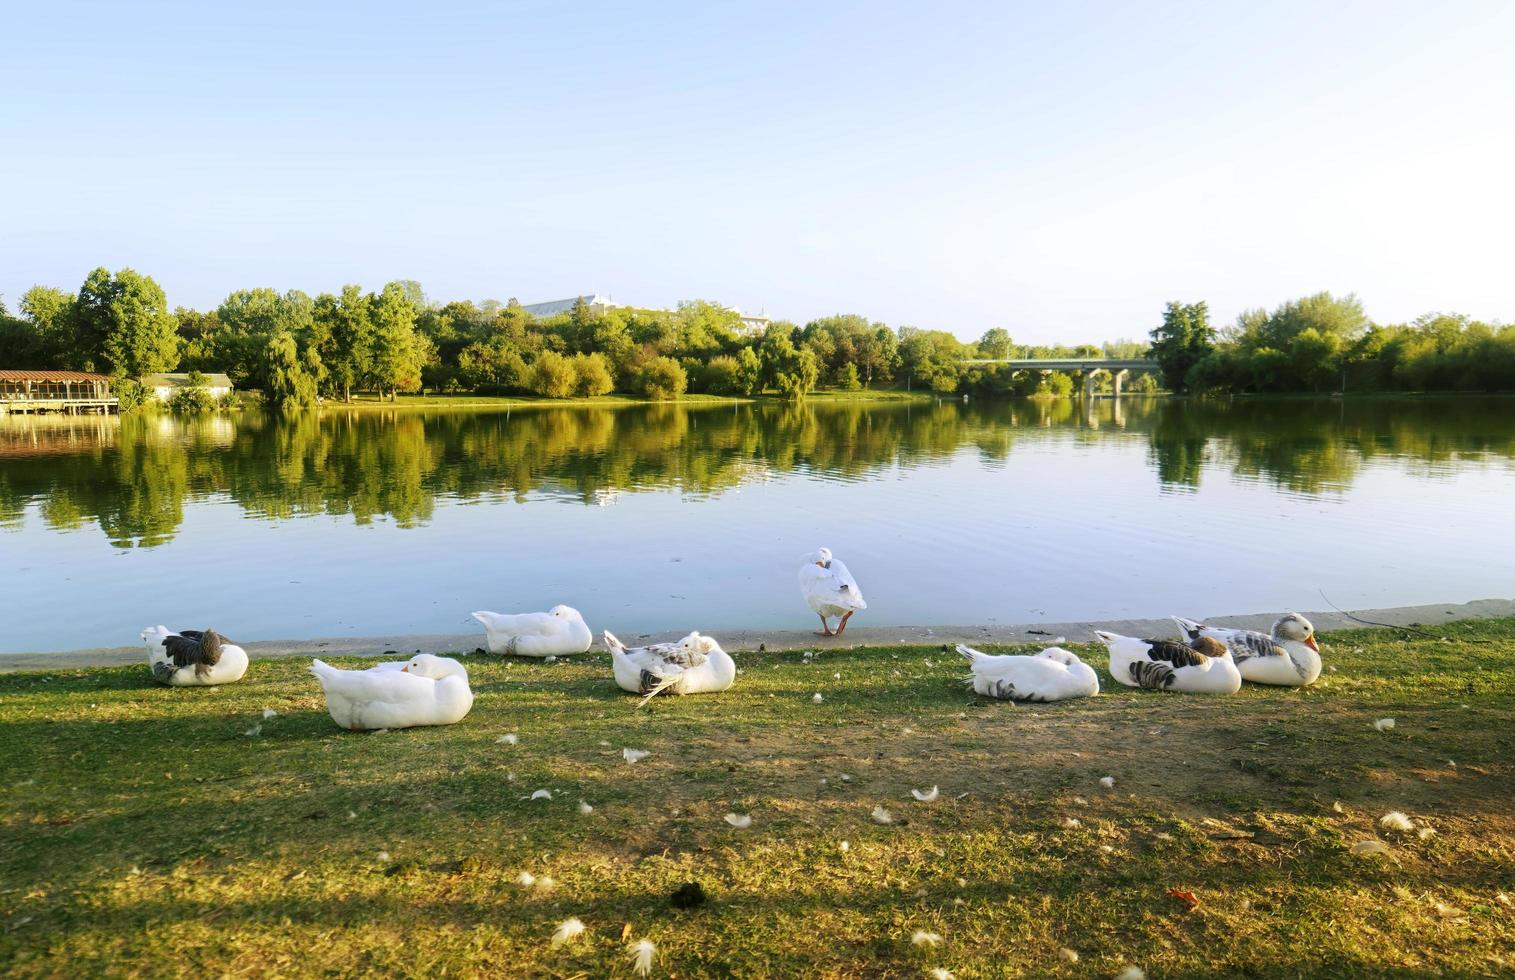 Geese relaxing on lakeshore in park photo